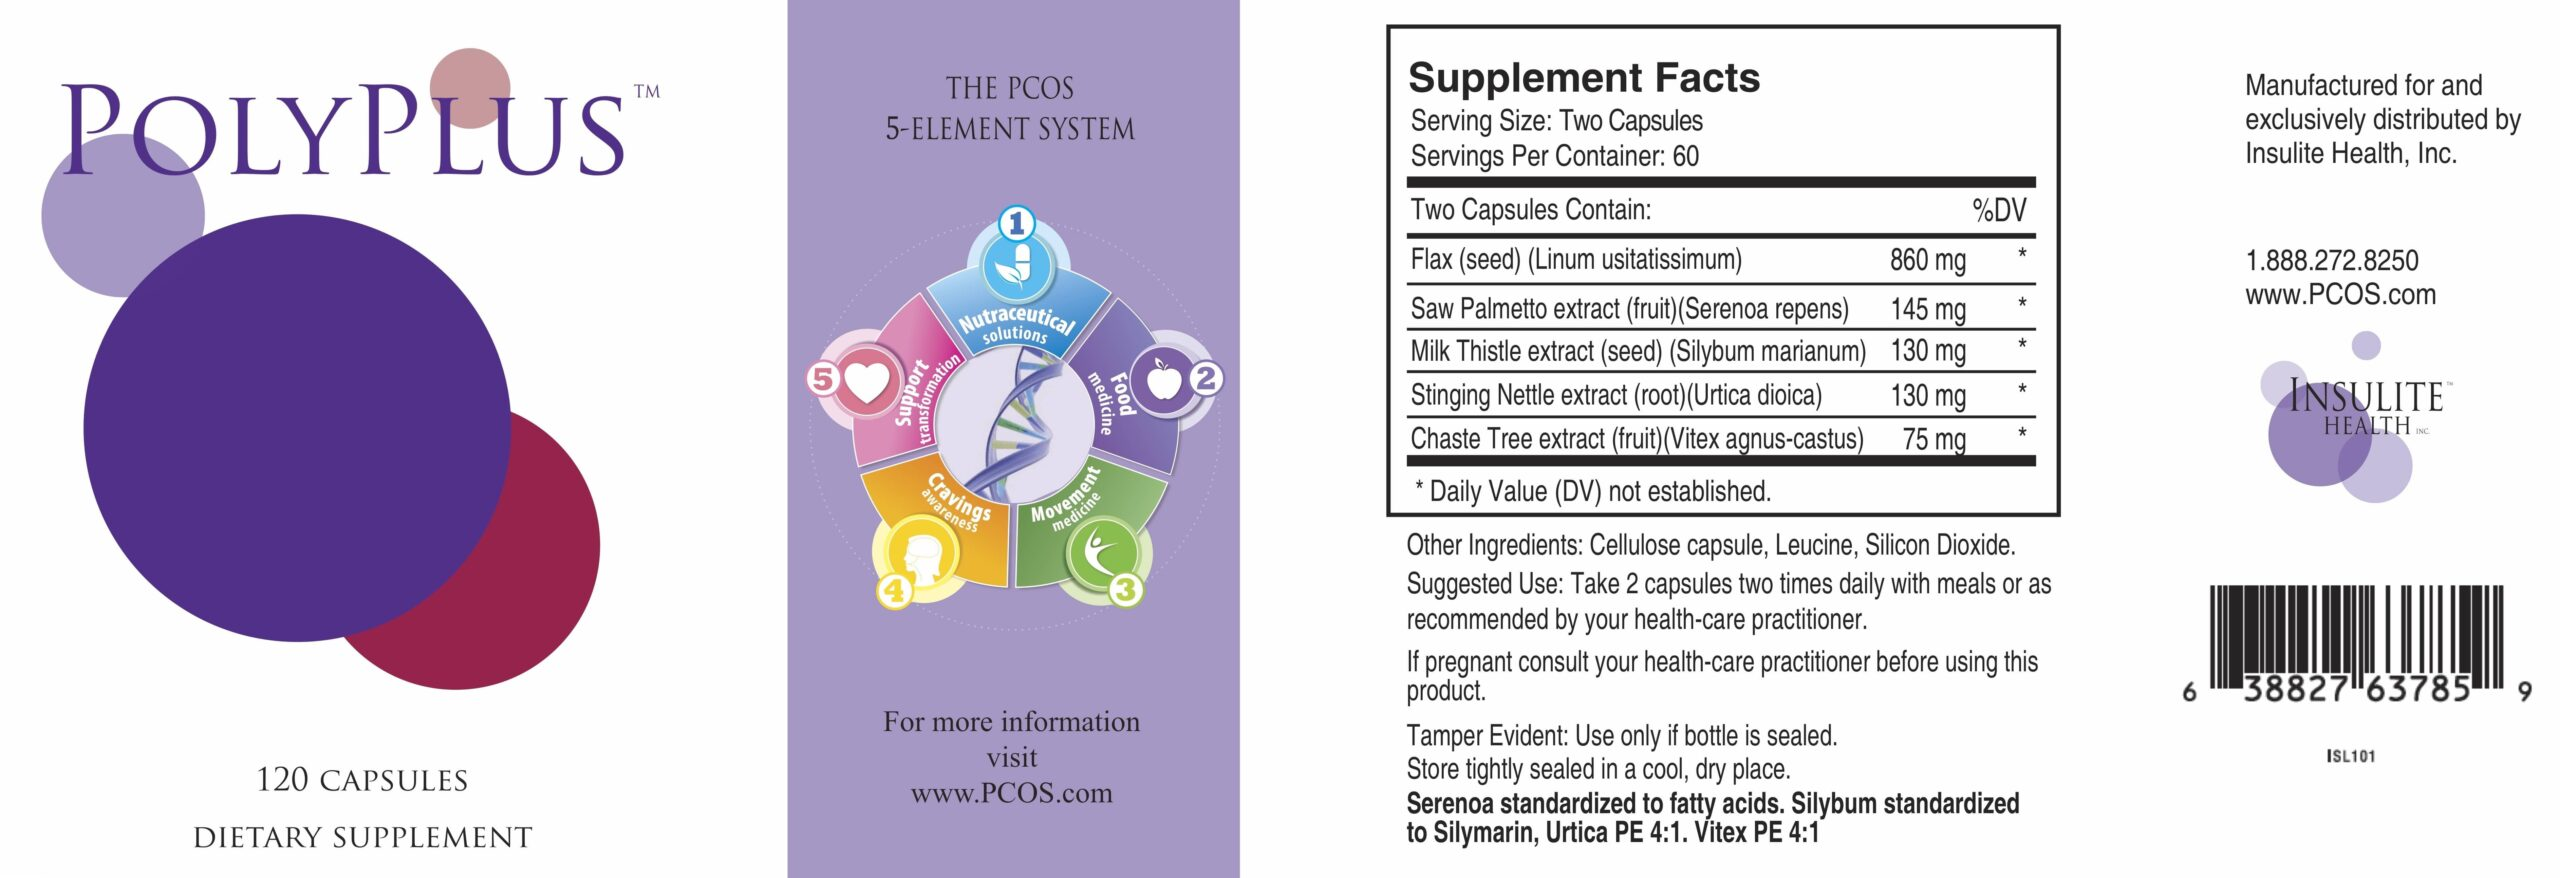 Natural Hormone Solution For PCOS Poly Plus